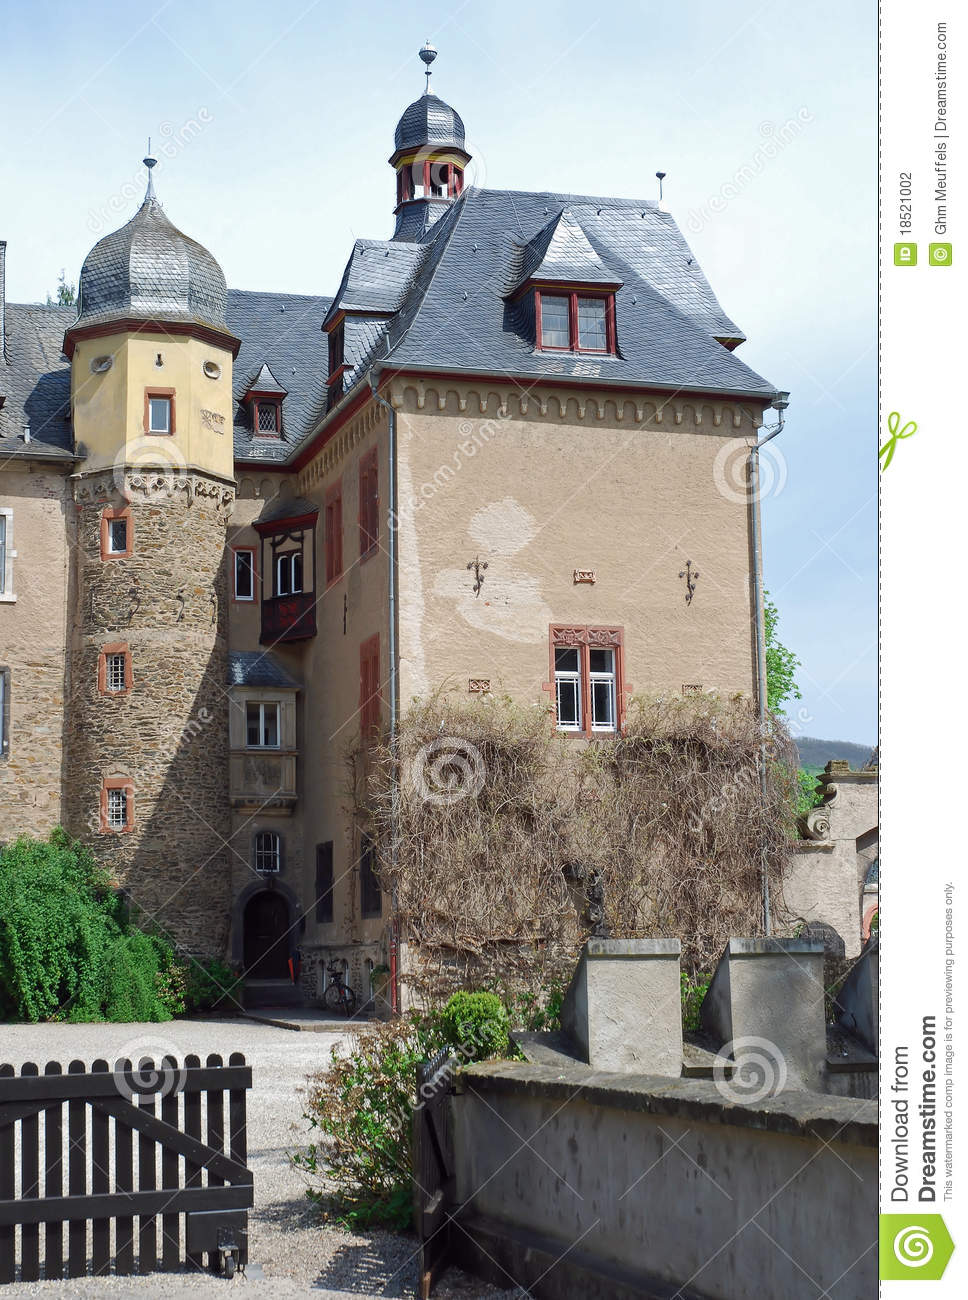 Burg Namedy un château moated, Andernach, Allemagne